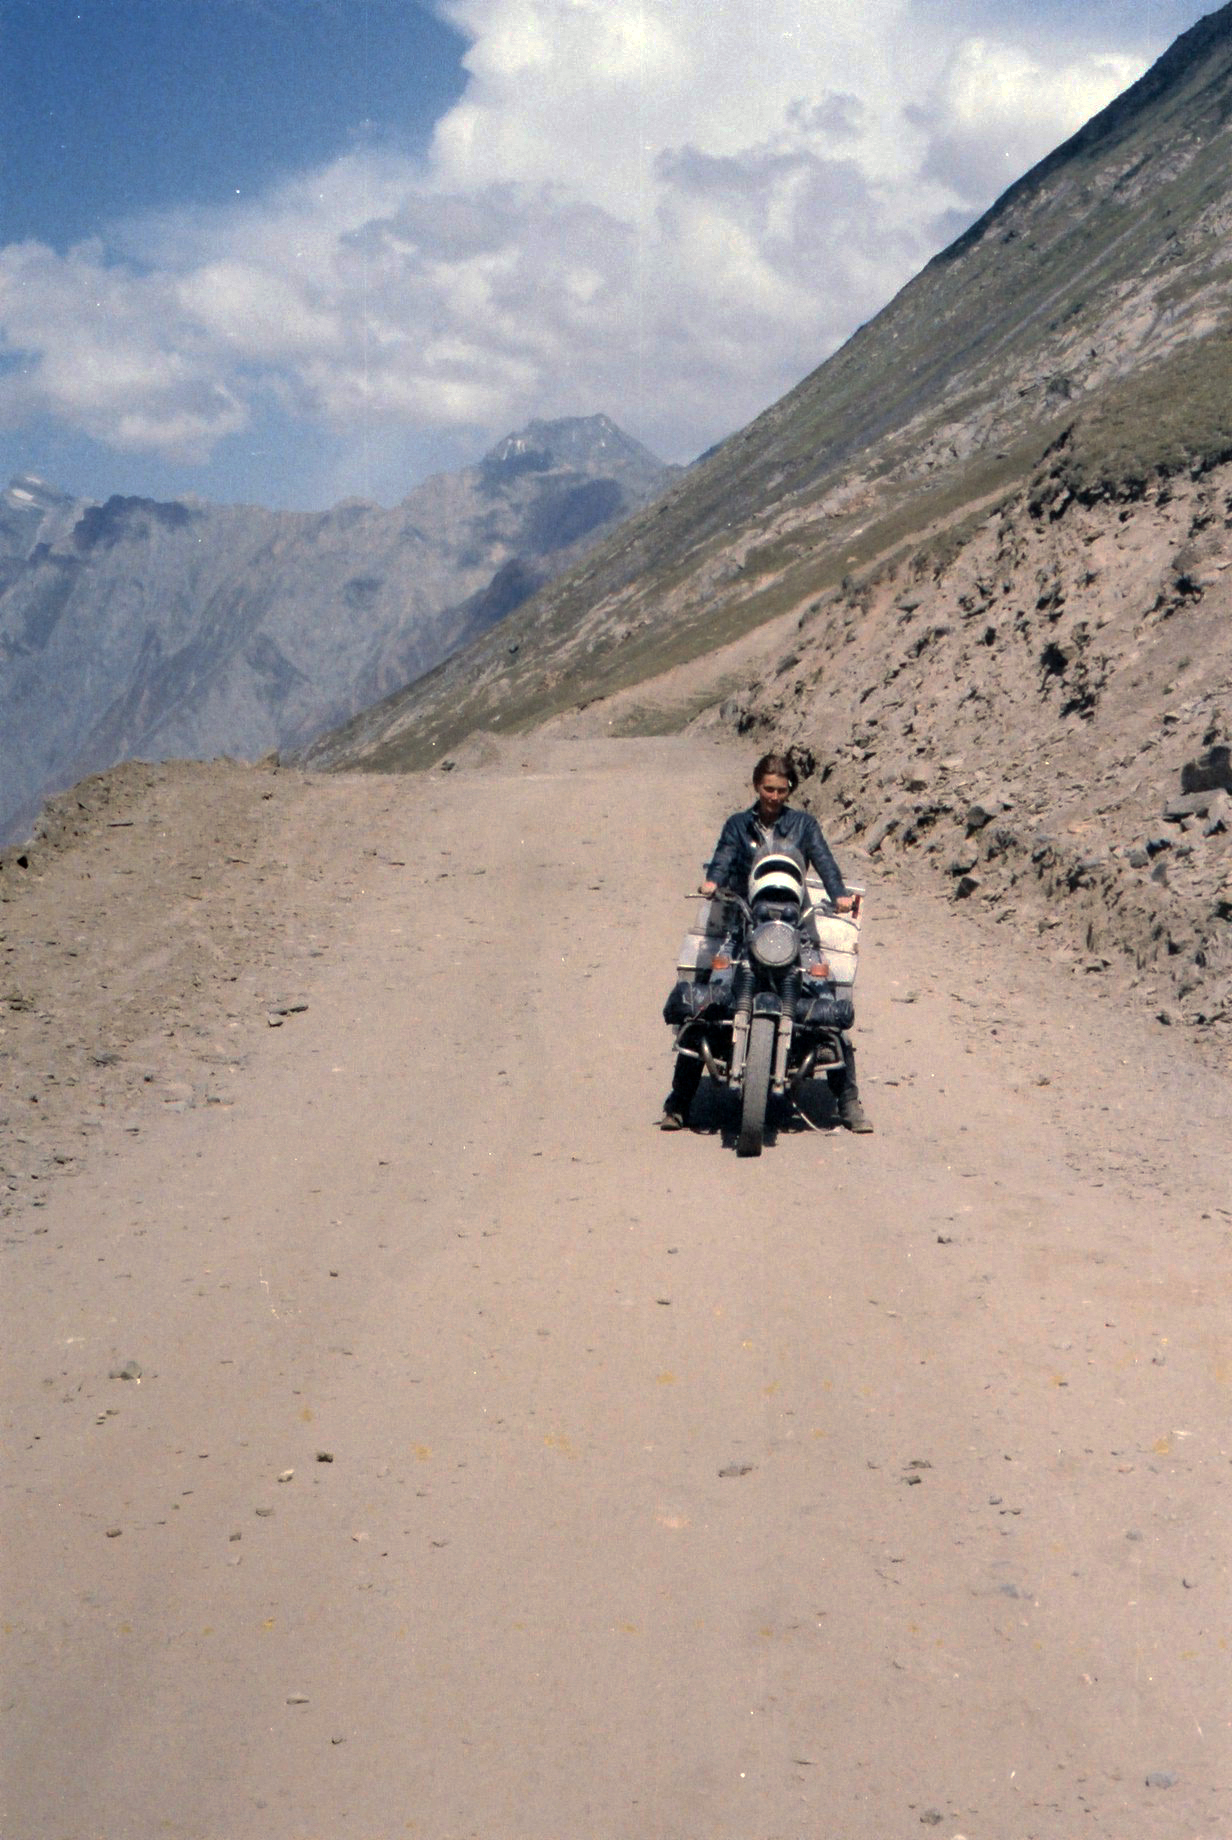 59. Road back to Srinagar - Ladakh